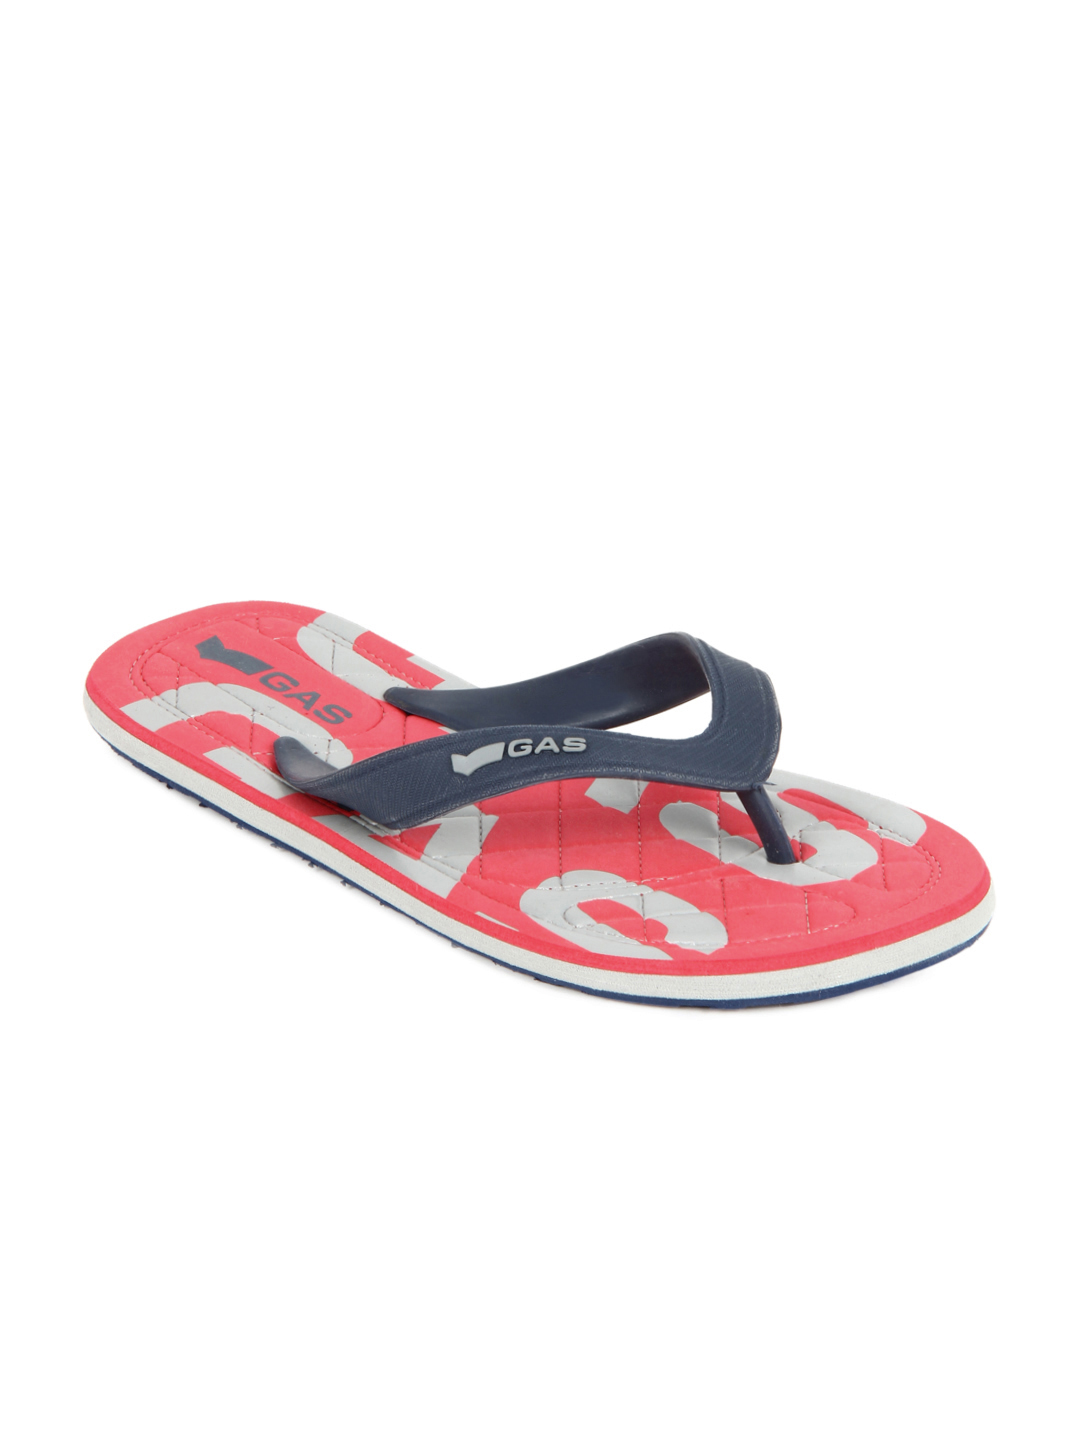 GAS Men Blue Beach Flip Flops